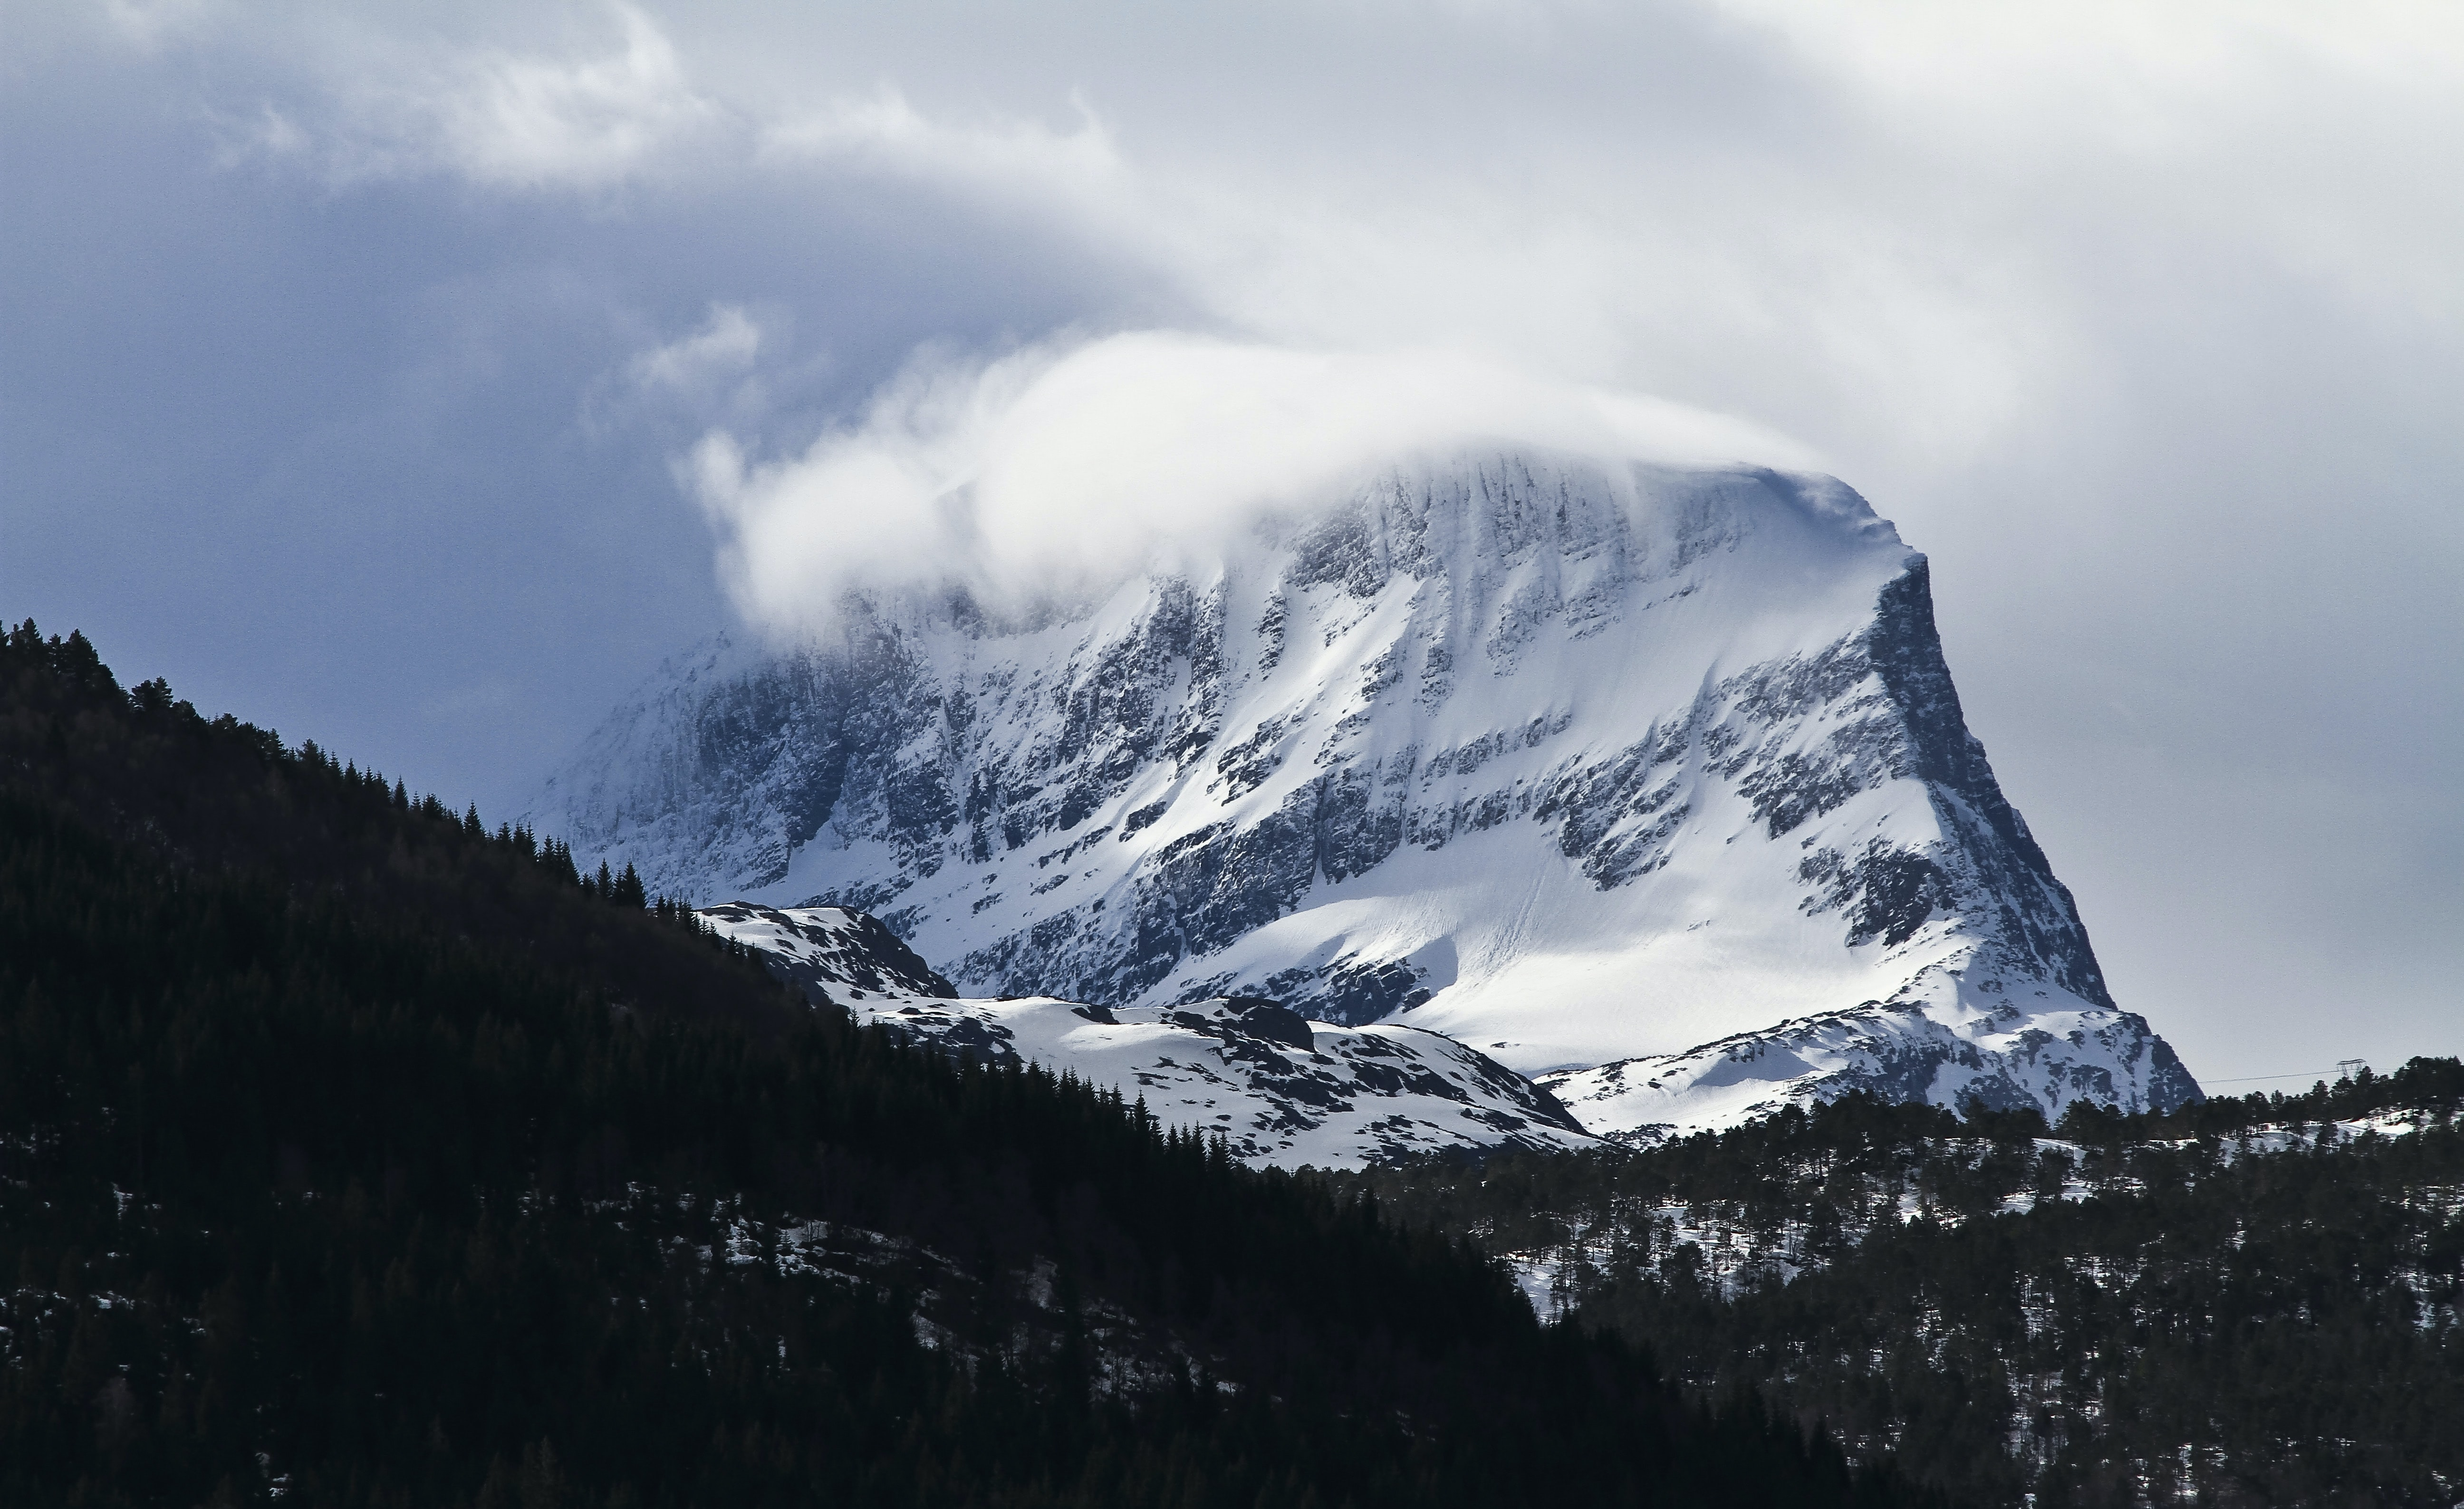 Wind blowing snow off a steep mountain